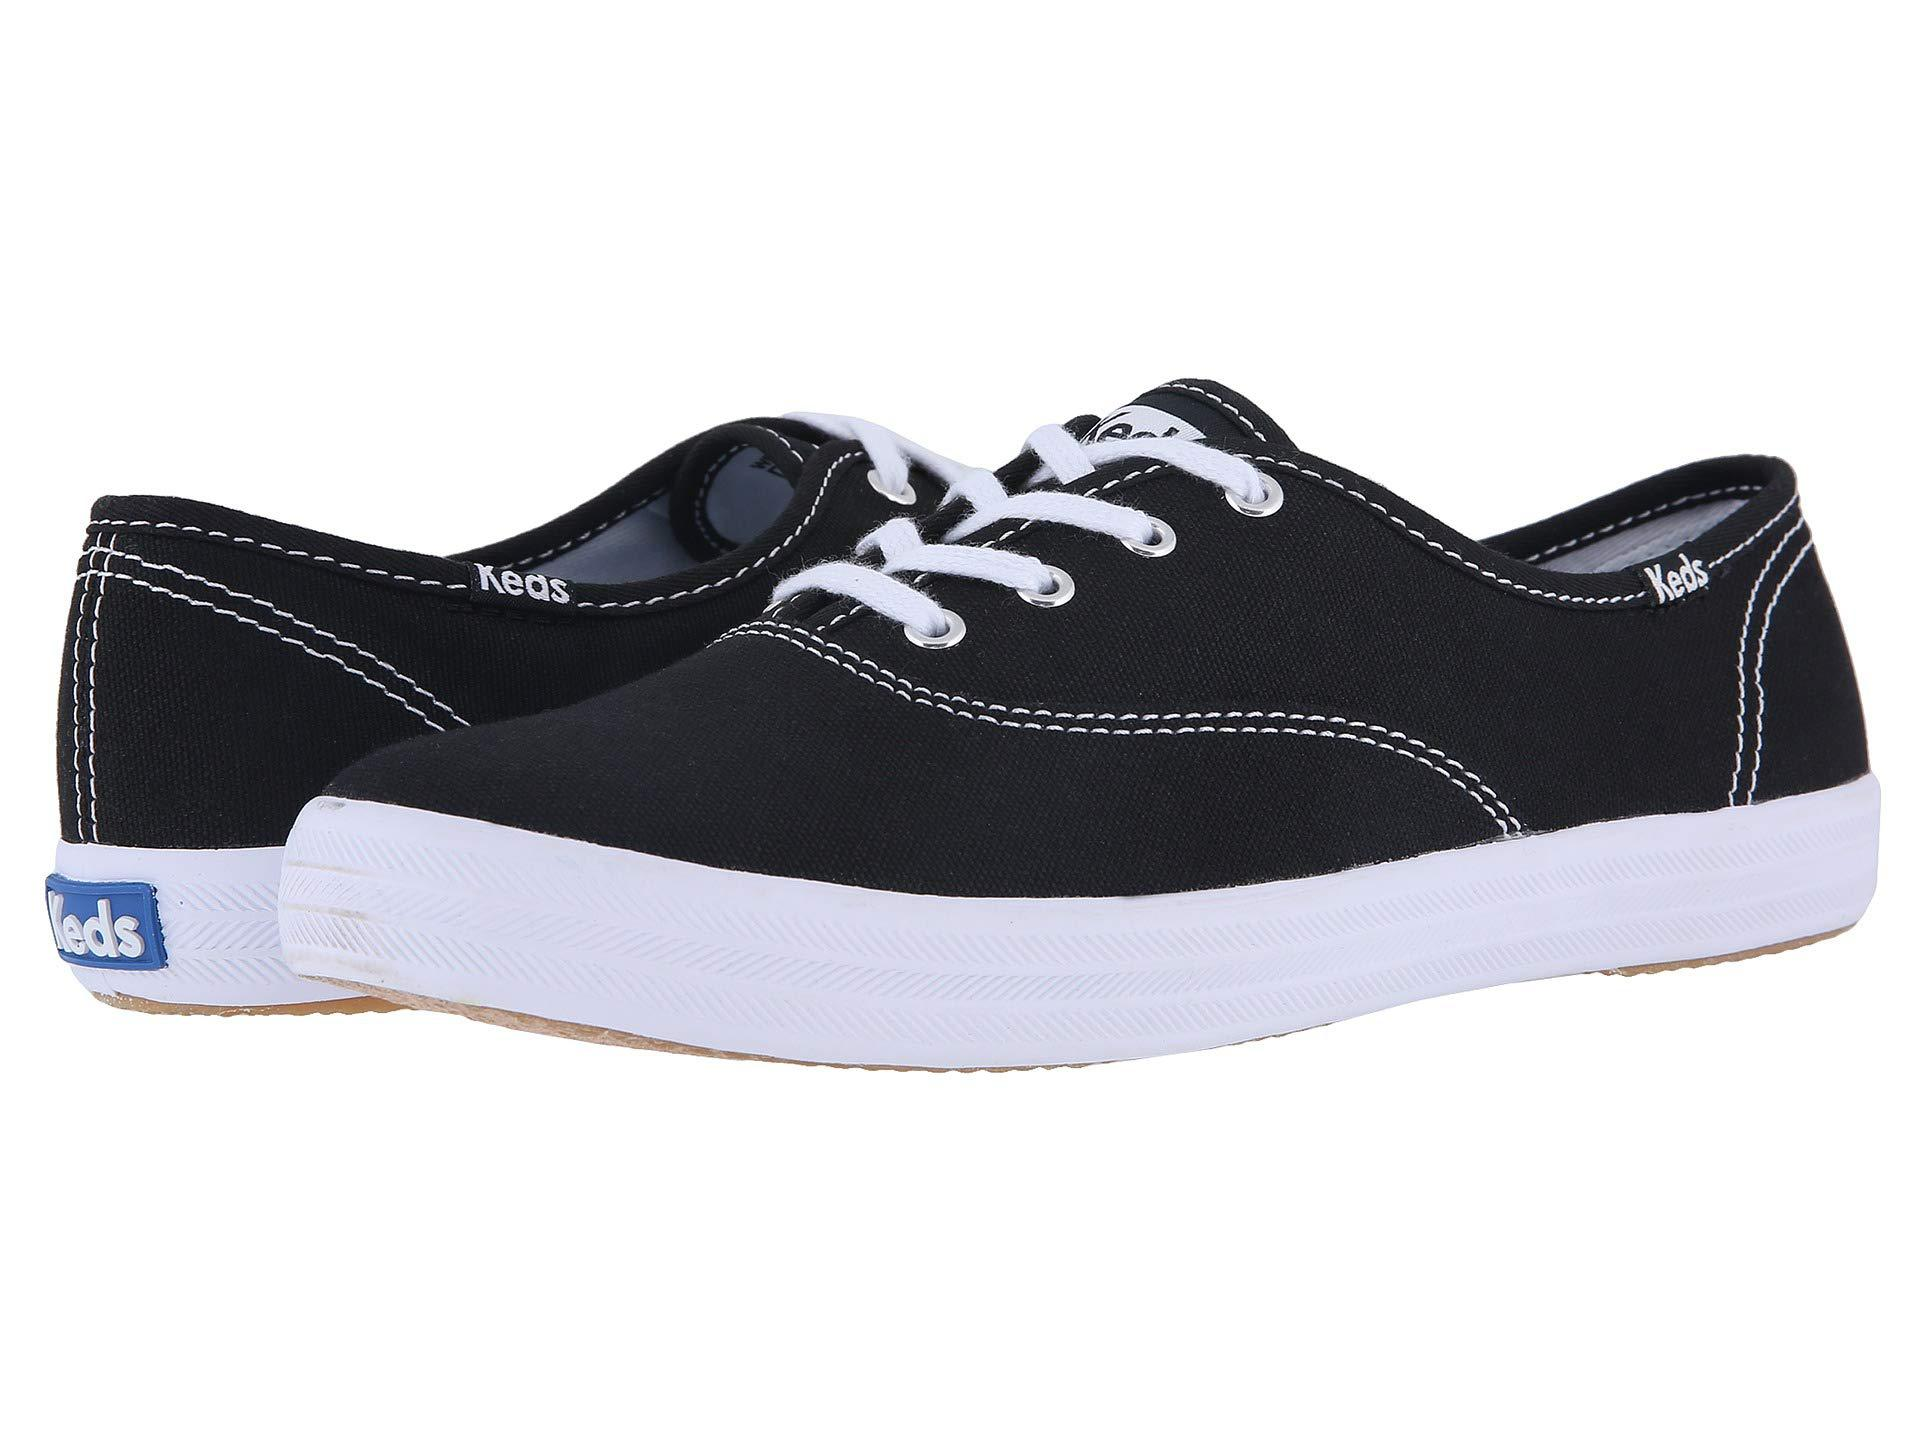 8a83b80f2c815 Lyst - Keds Champion Core Trainers in Black - Save 22%